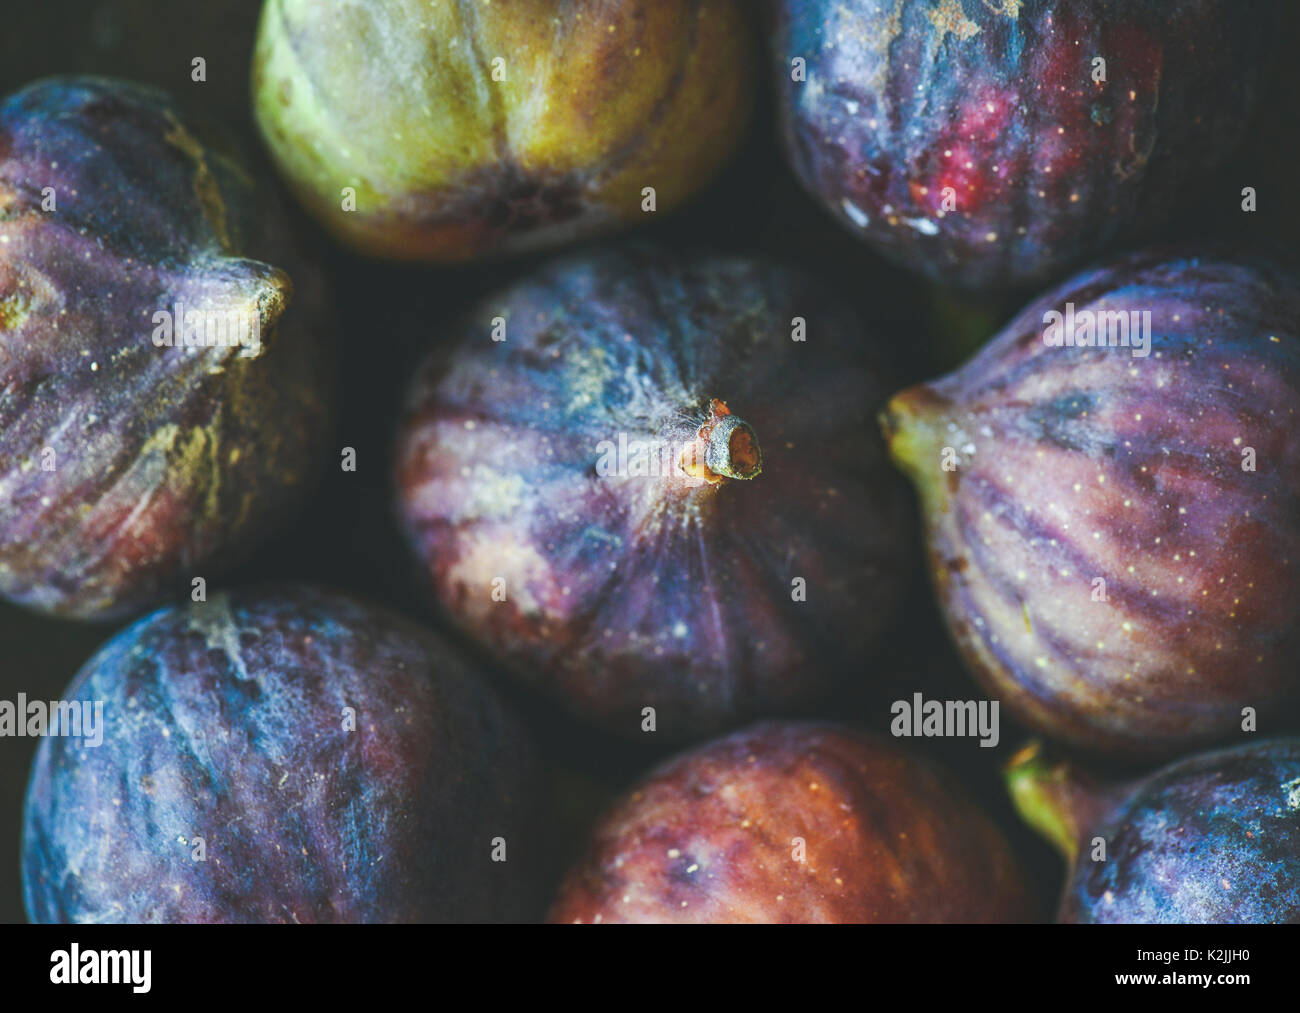 Close-up of fresh ripe purple figs, top view. Food texture and background. Organic fruit, local produce, farming, healthy food concepts - Stock Image